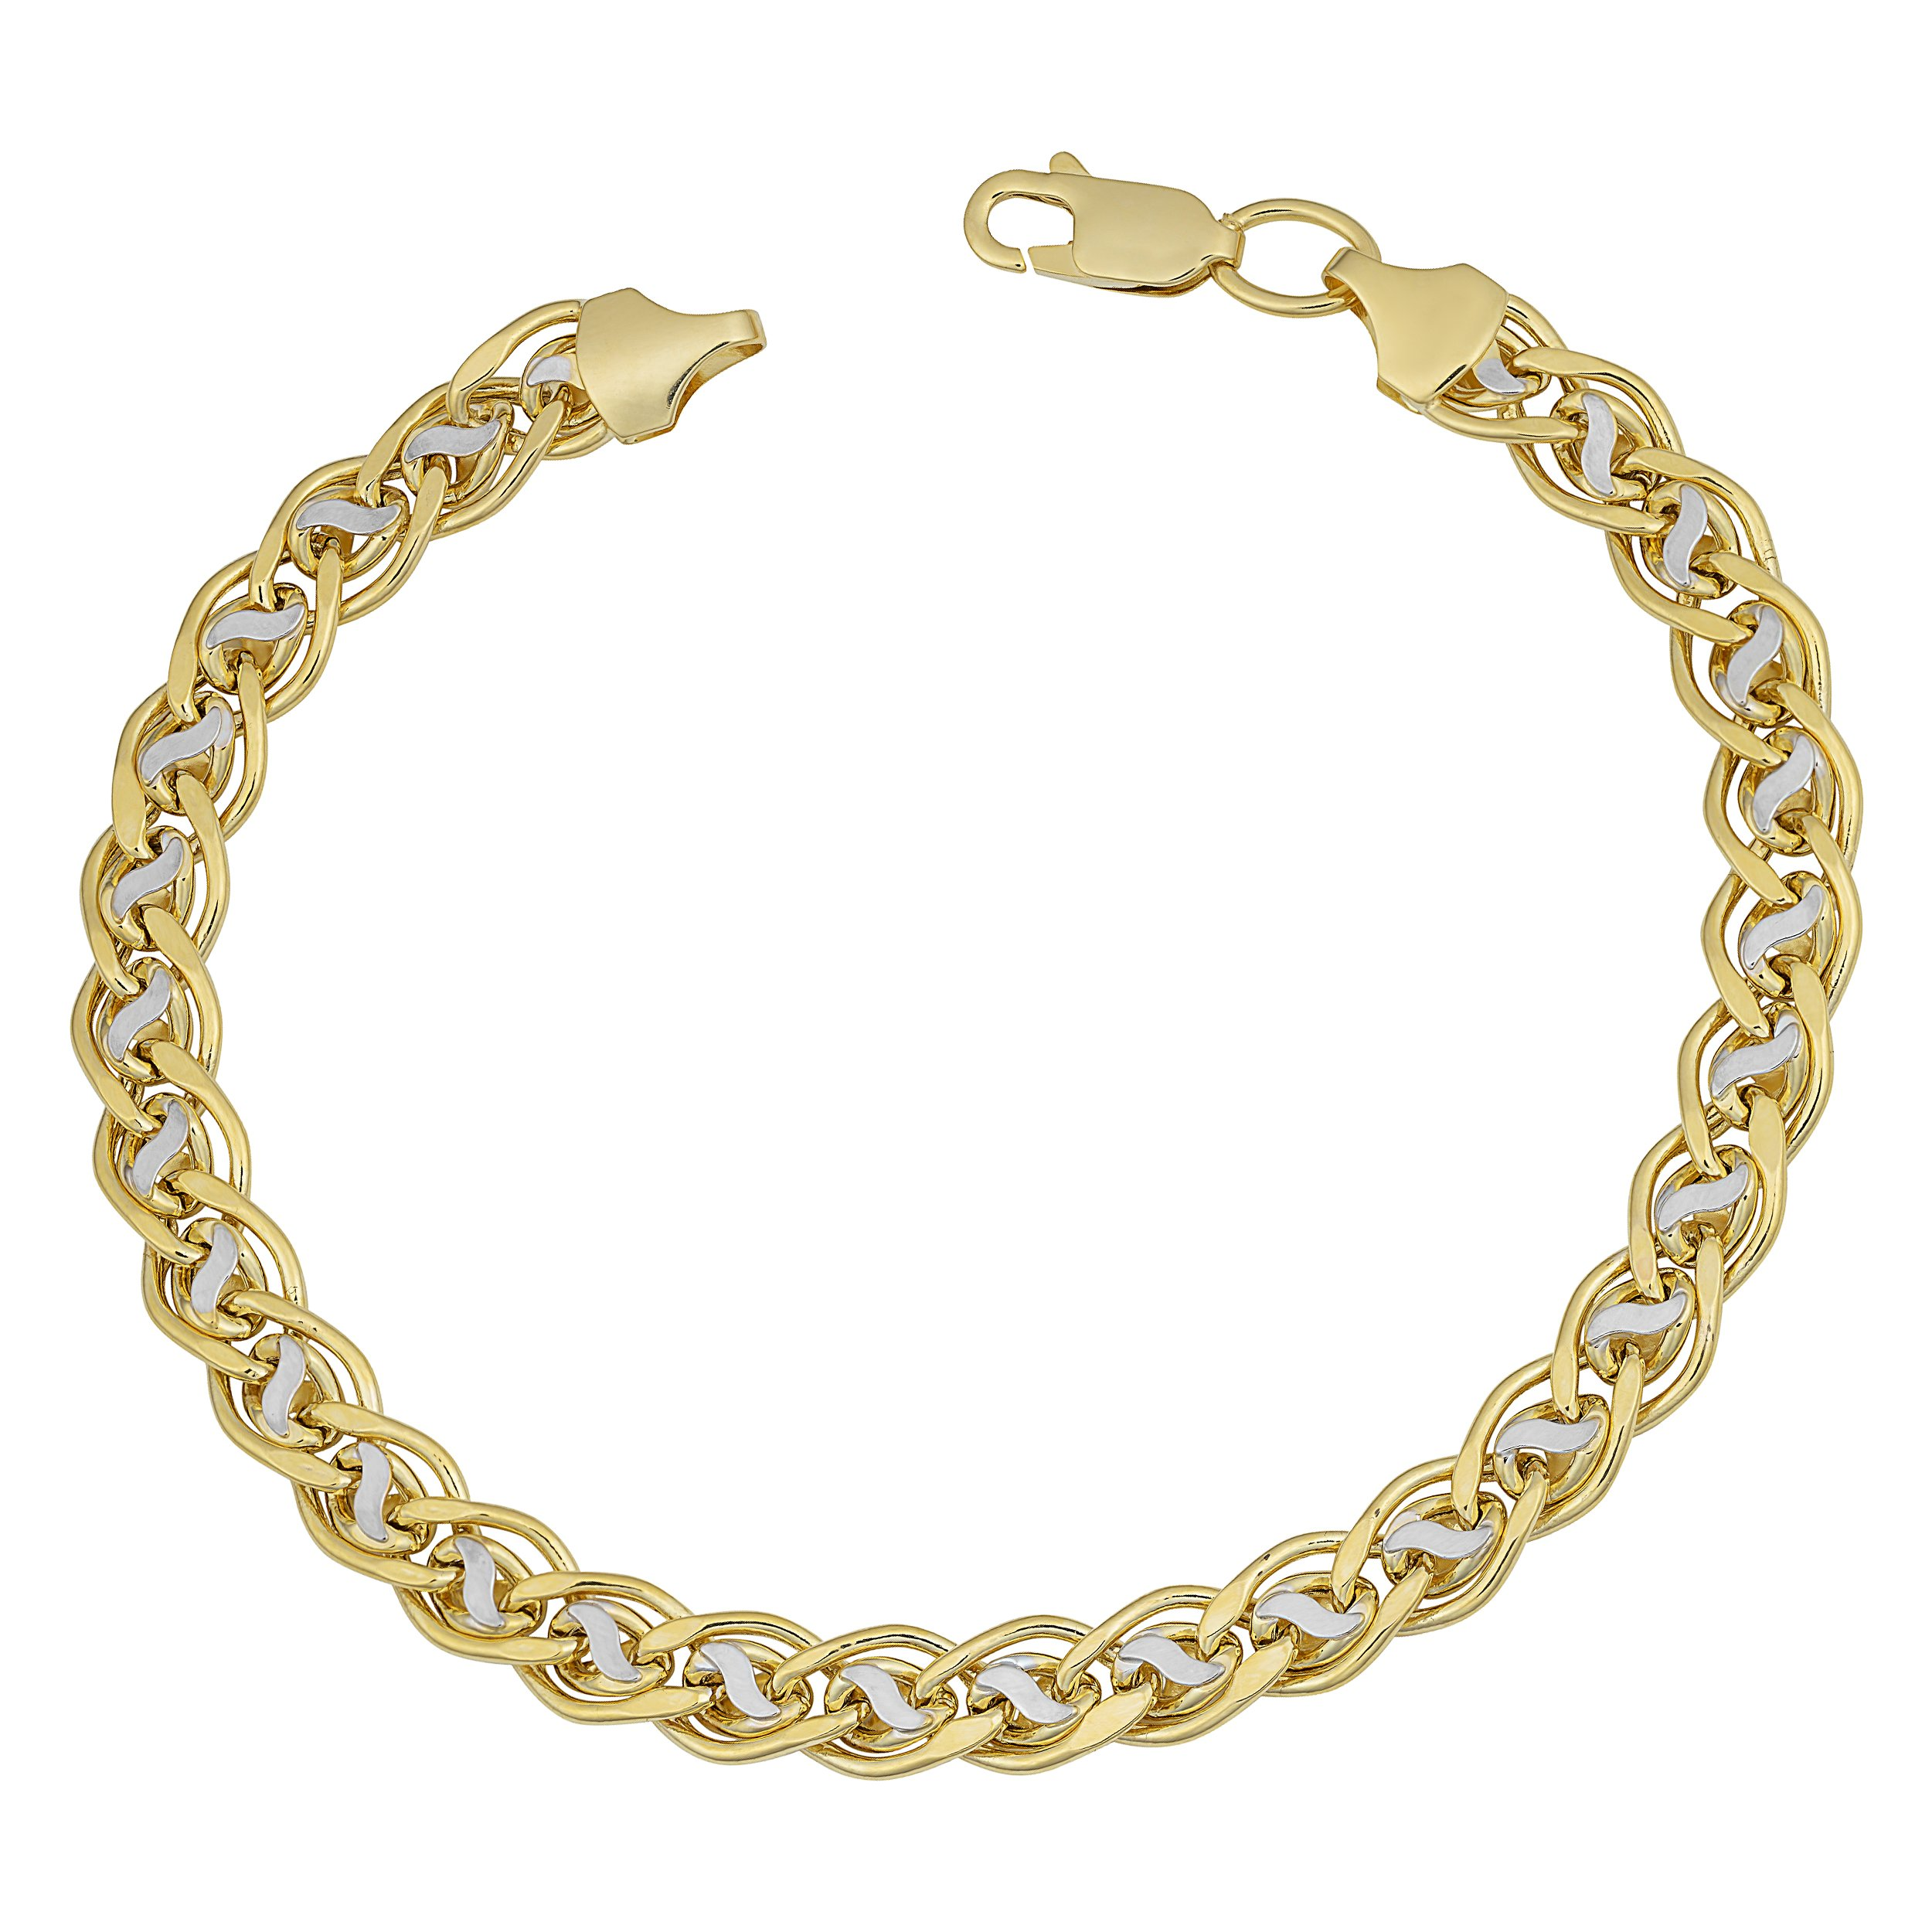 10k Two-Tone Gold 6.3mm Double Link Bracelet (8 inch)